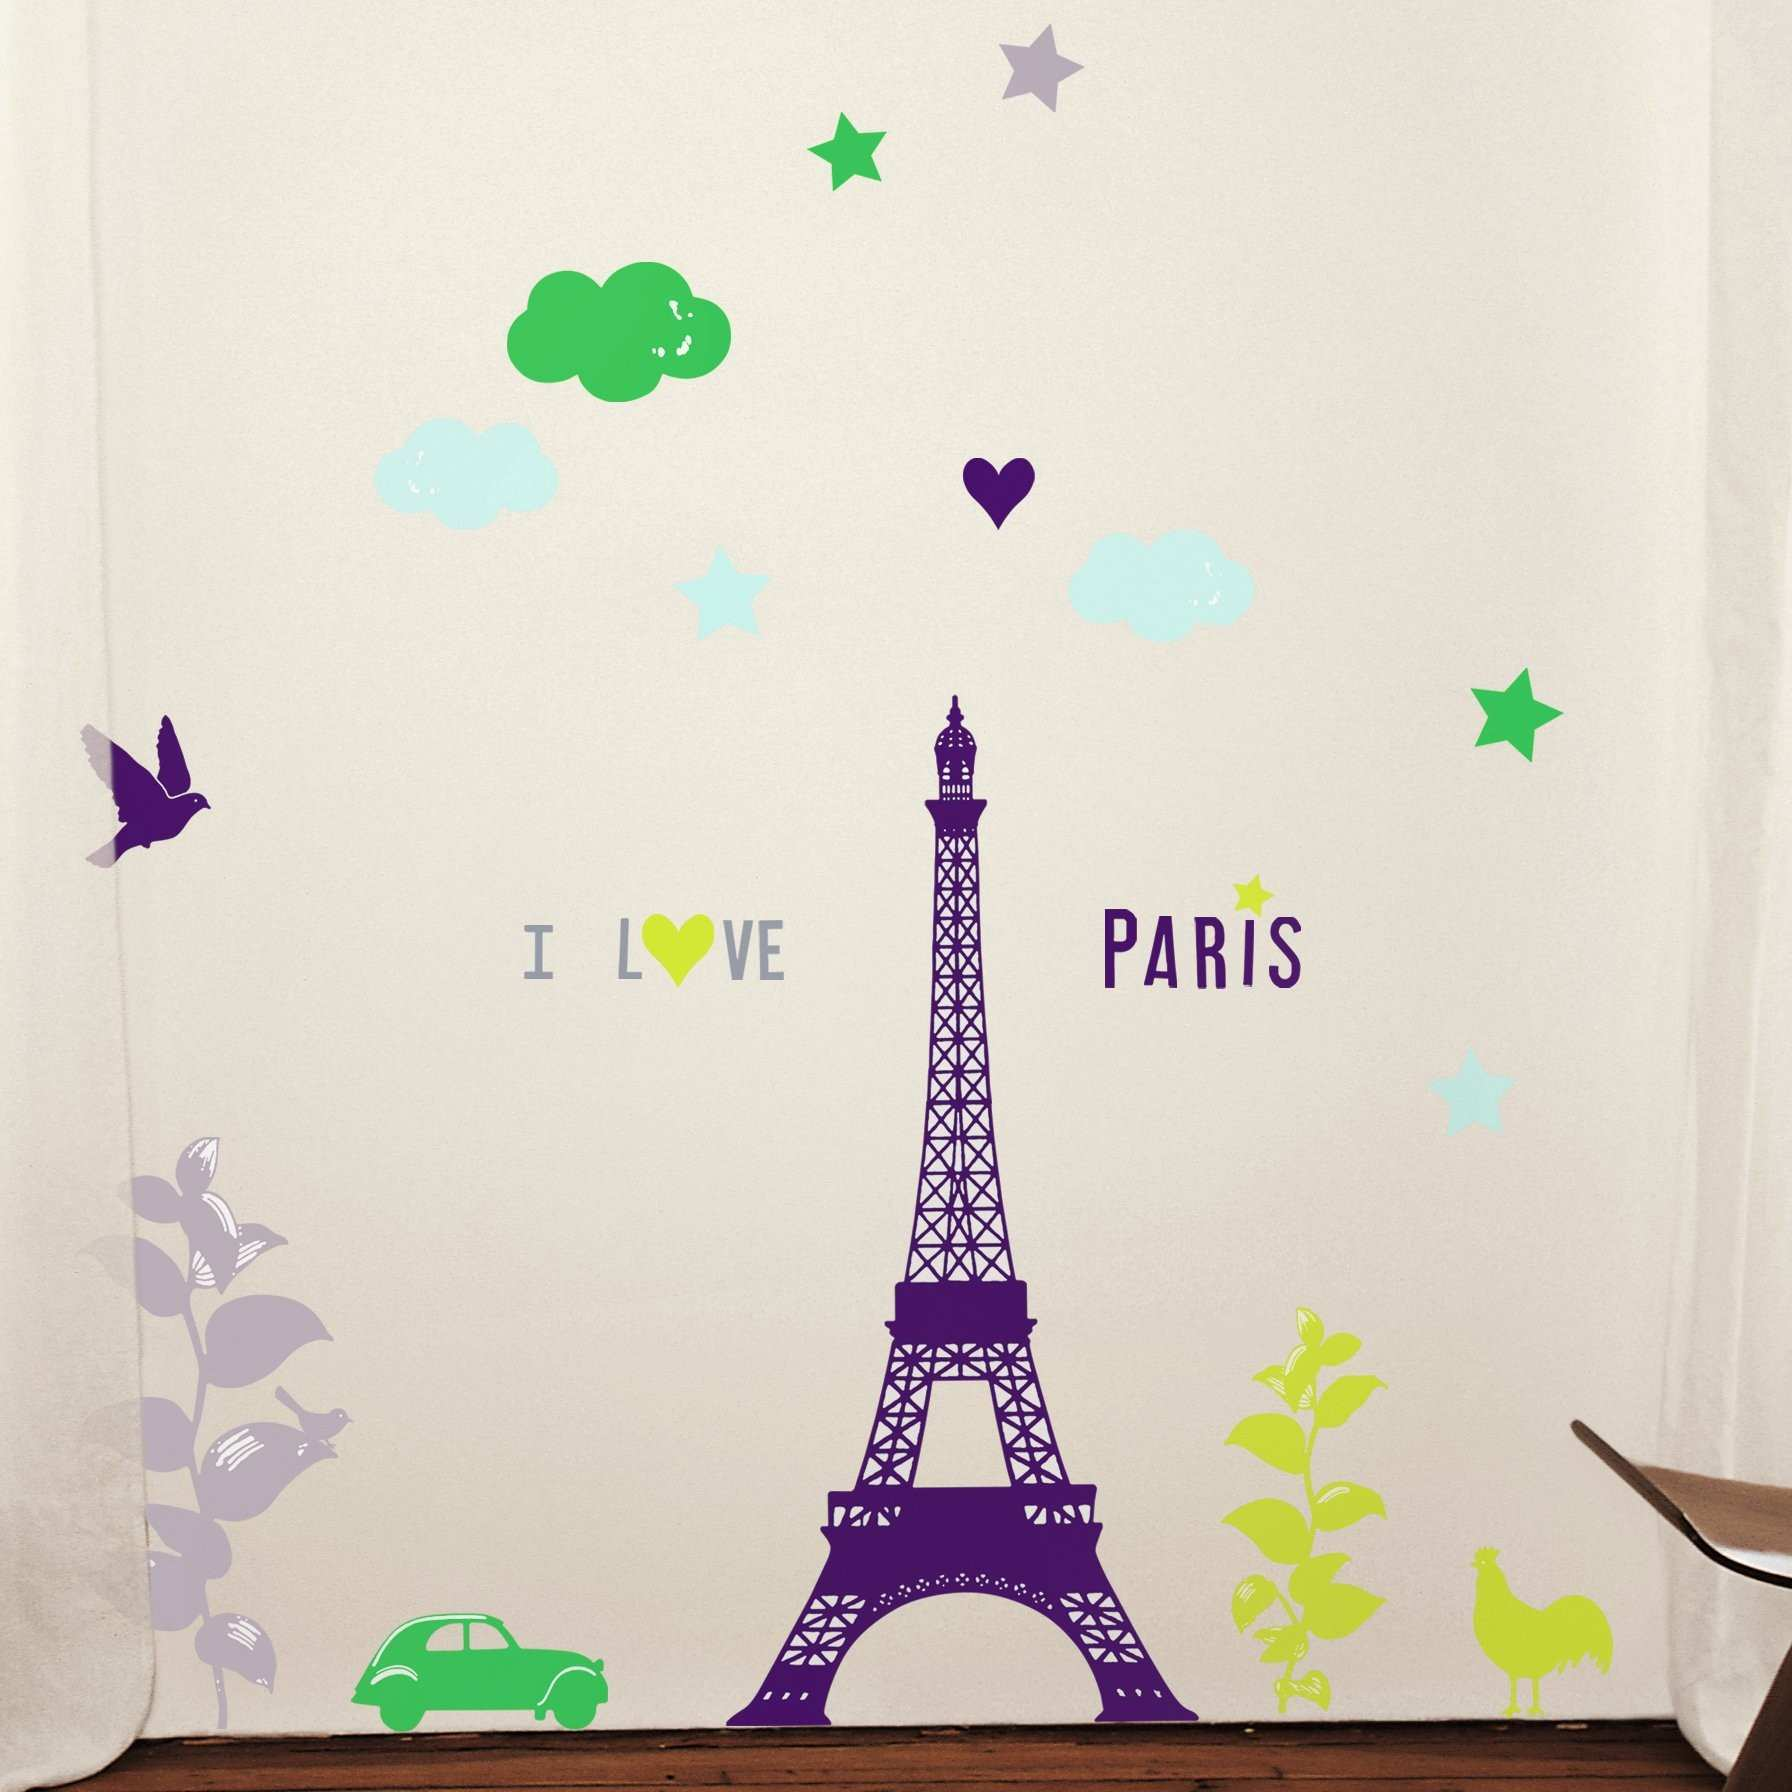 Retrospect Group I love Paris Decorative Wall Decal